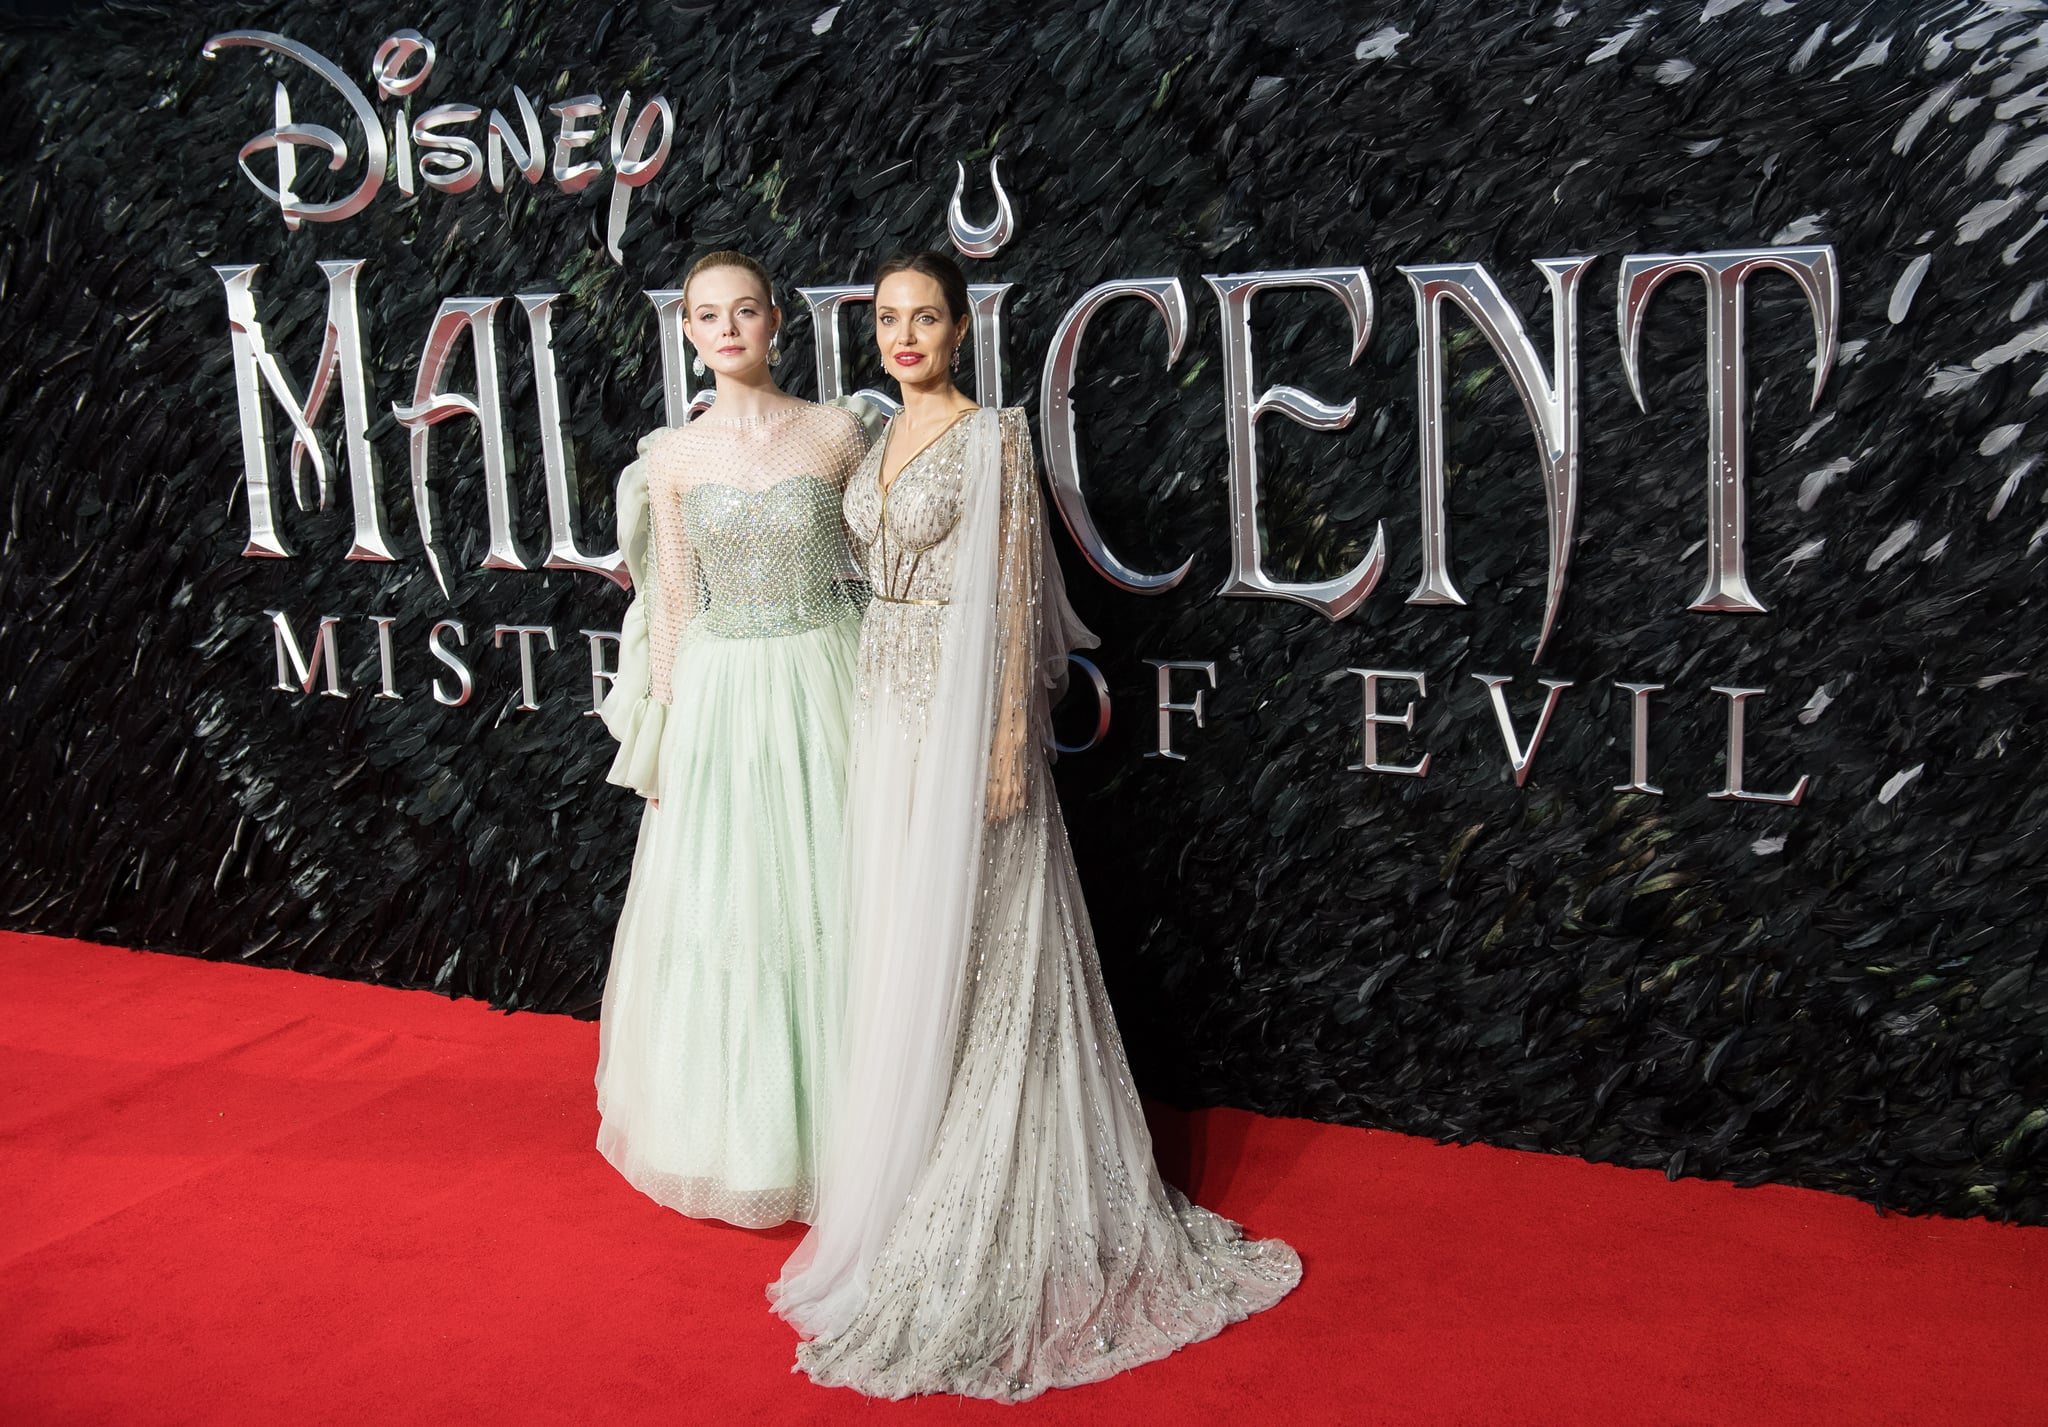 Elle Fanning And Angelina Jolie At The Maleficent Mistress